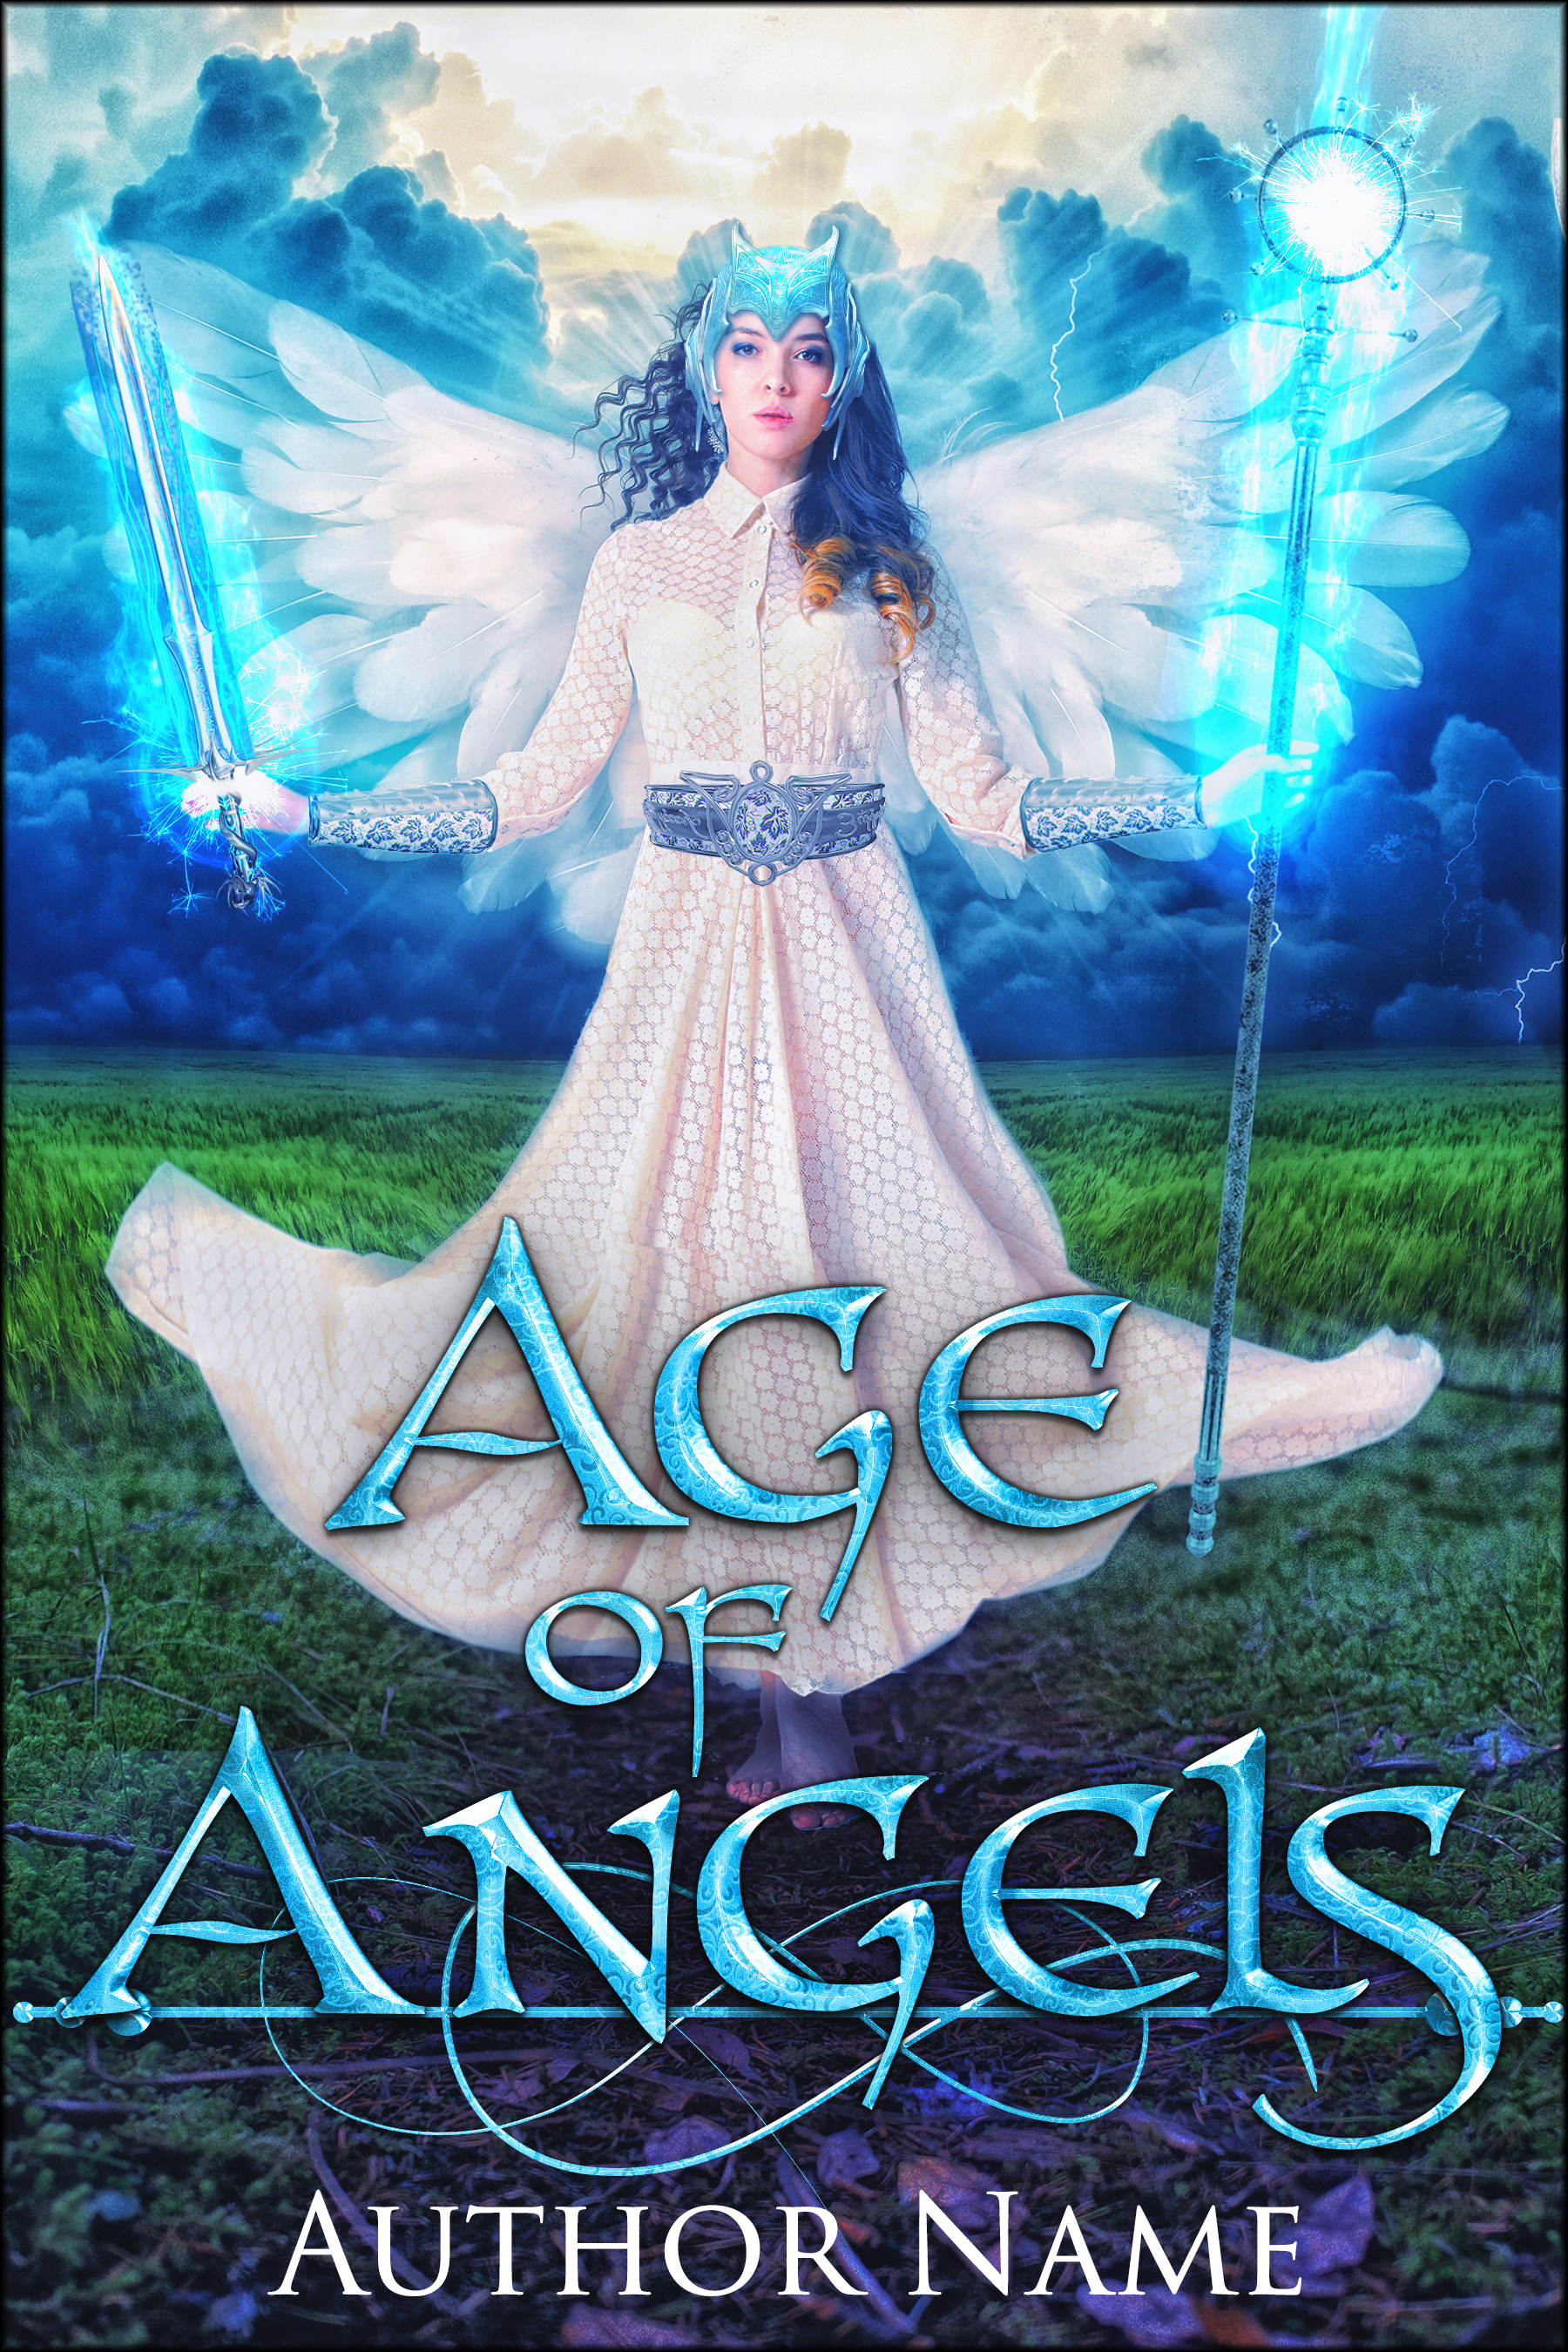 $100 - Age of Angels